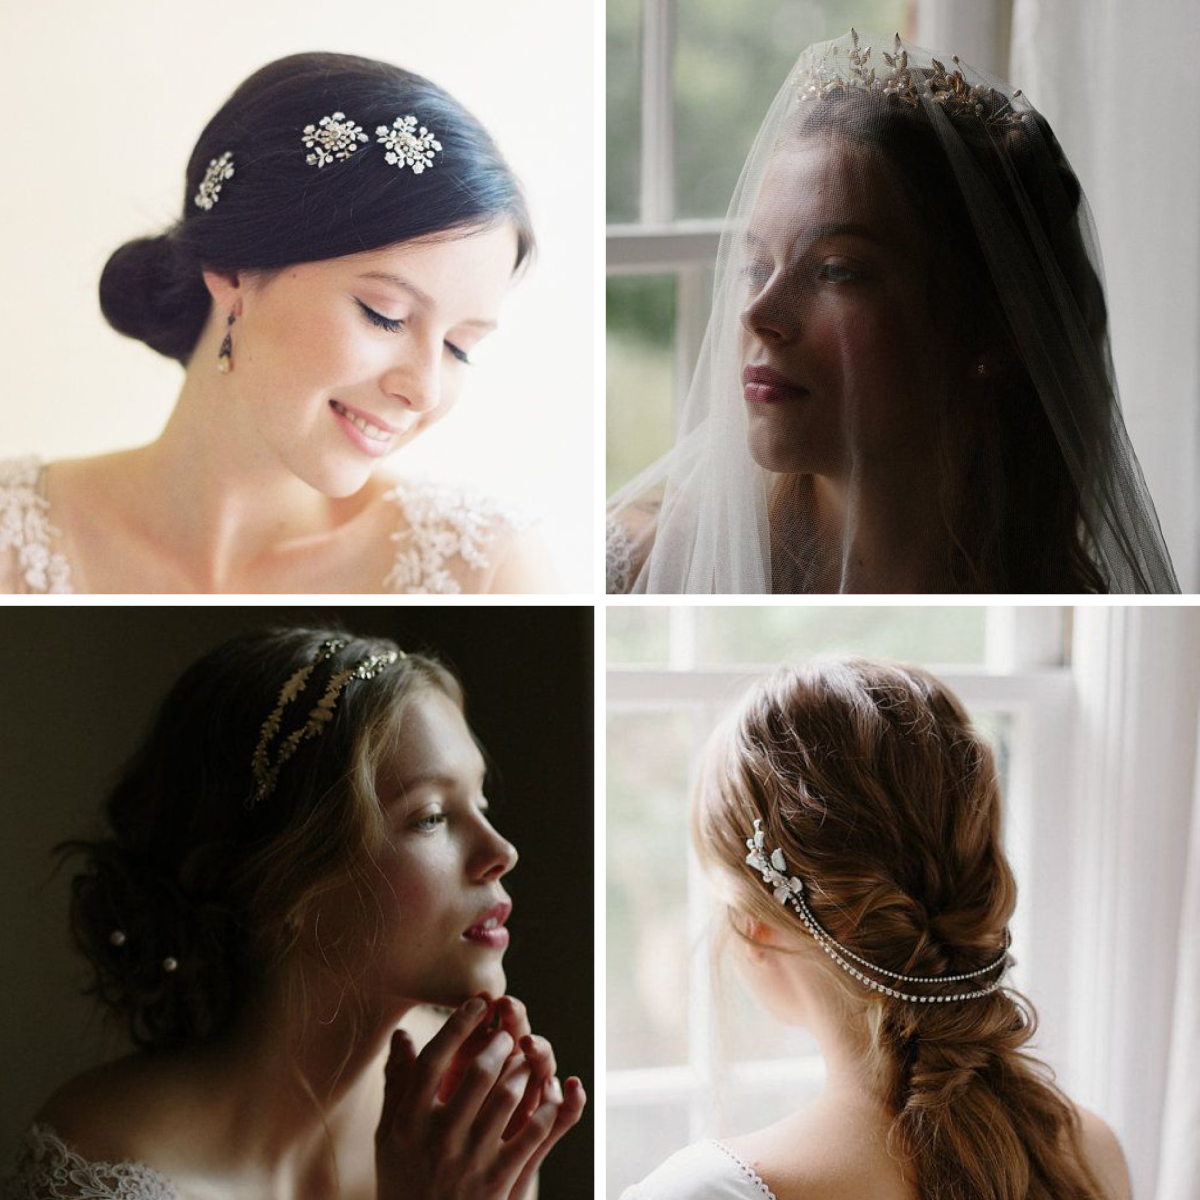 1. Rhinestone Bobby Pins, $195 / 2. Crown, $345 / 3. Grecian Headband, $225 / 4. Chain Headpiece, $255